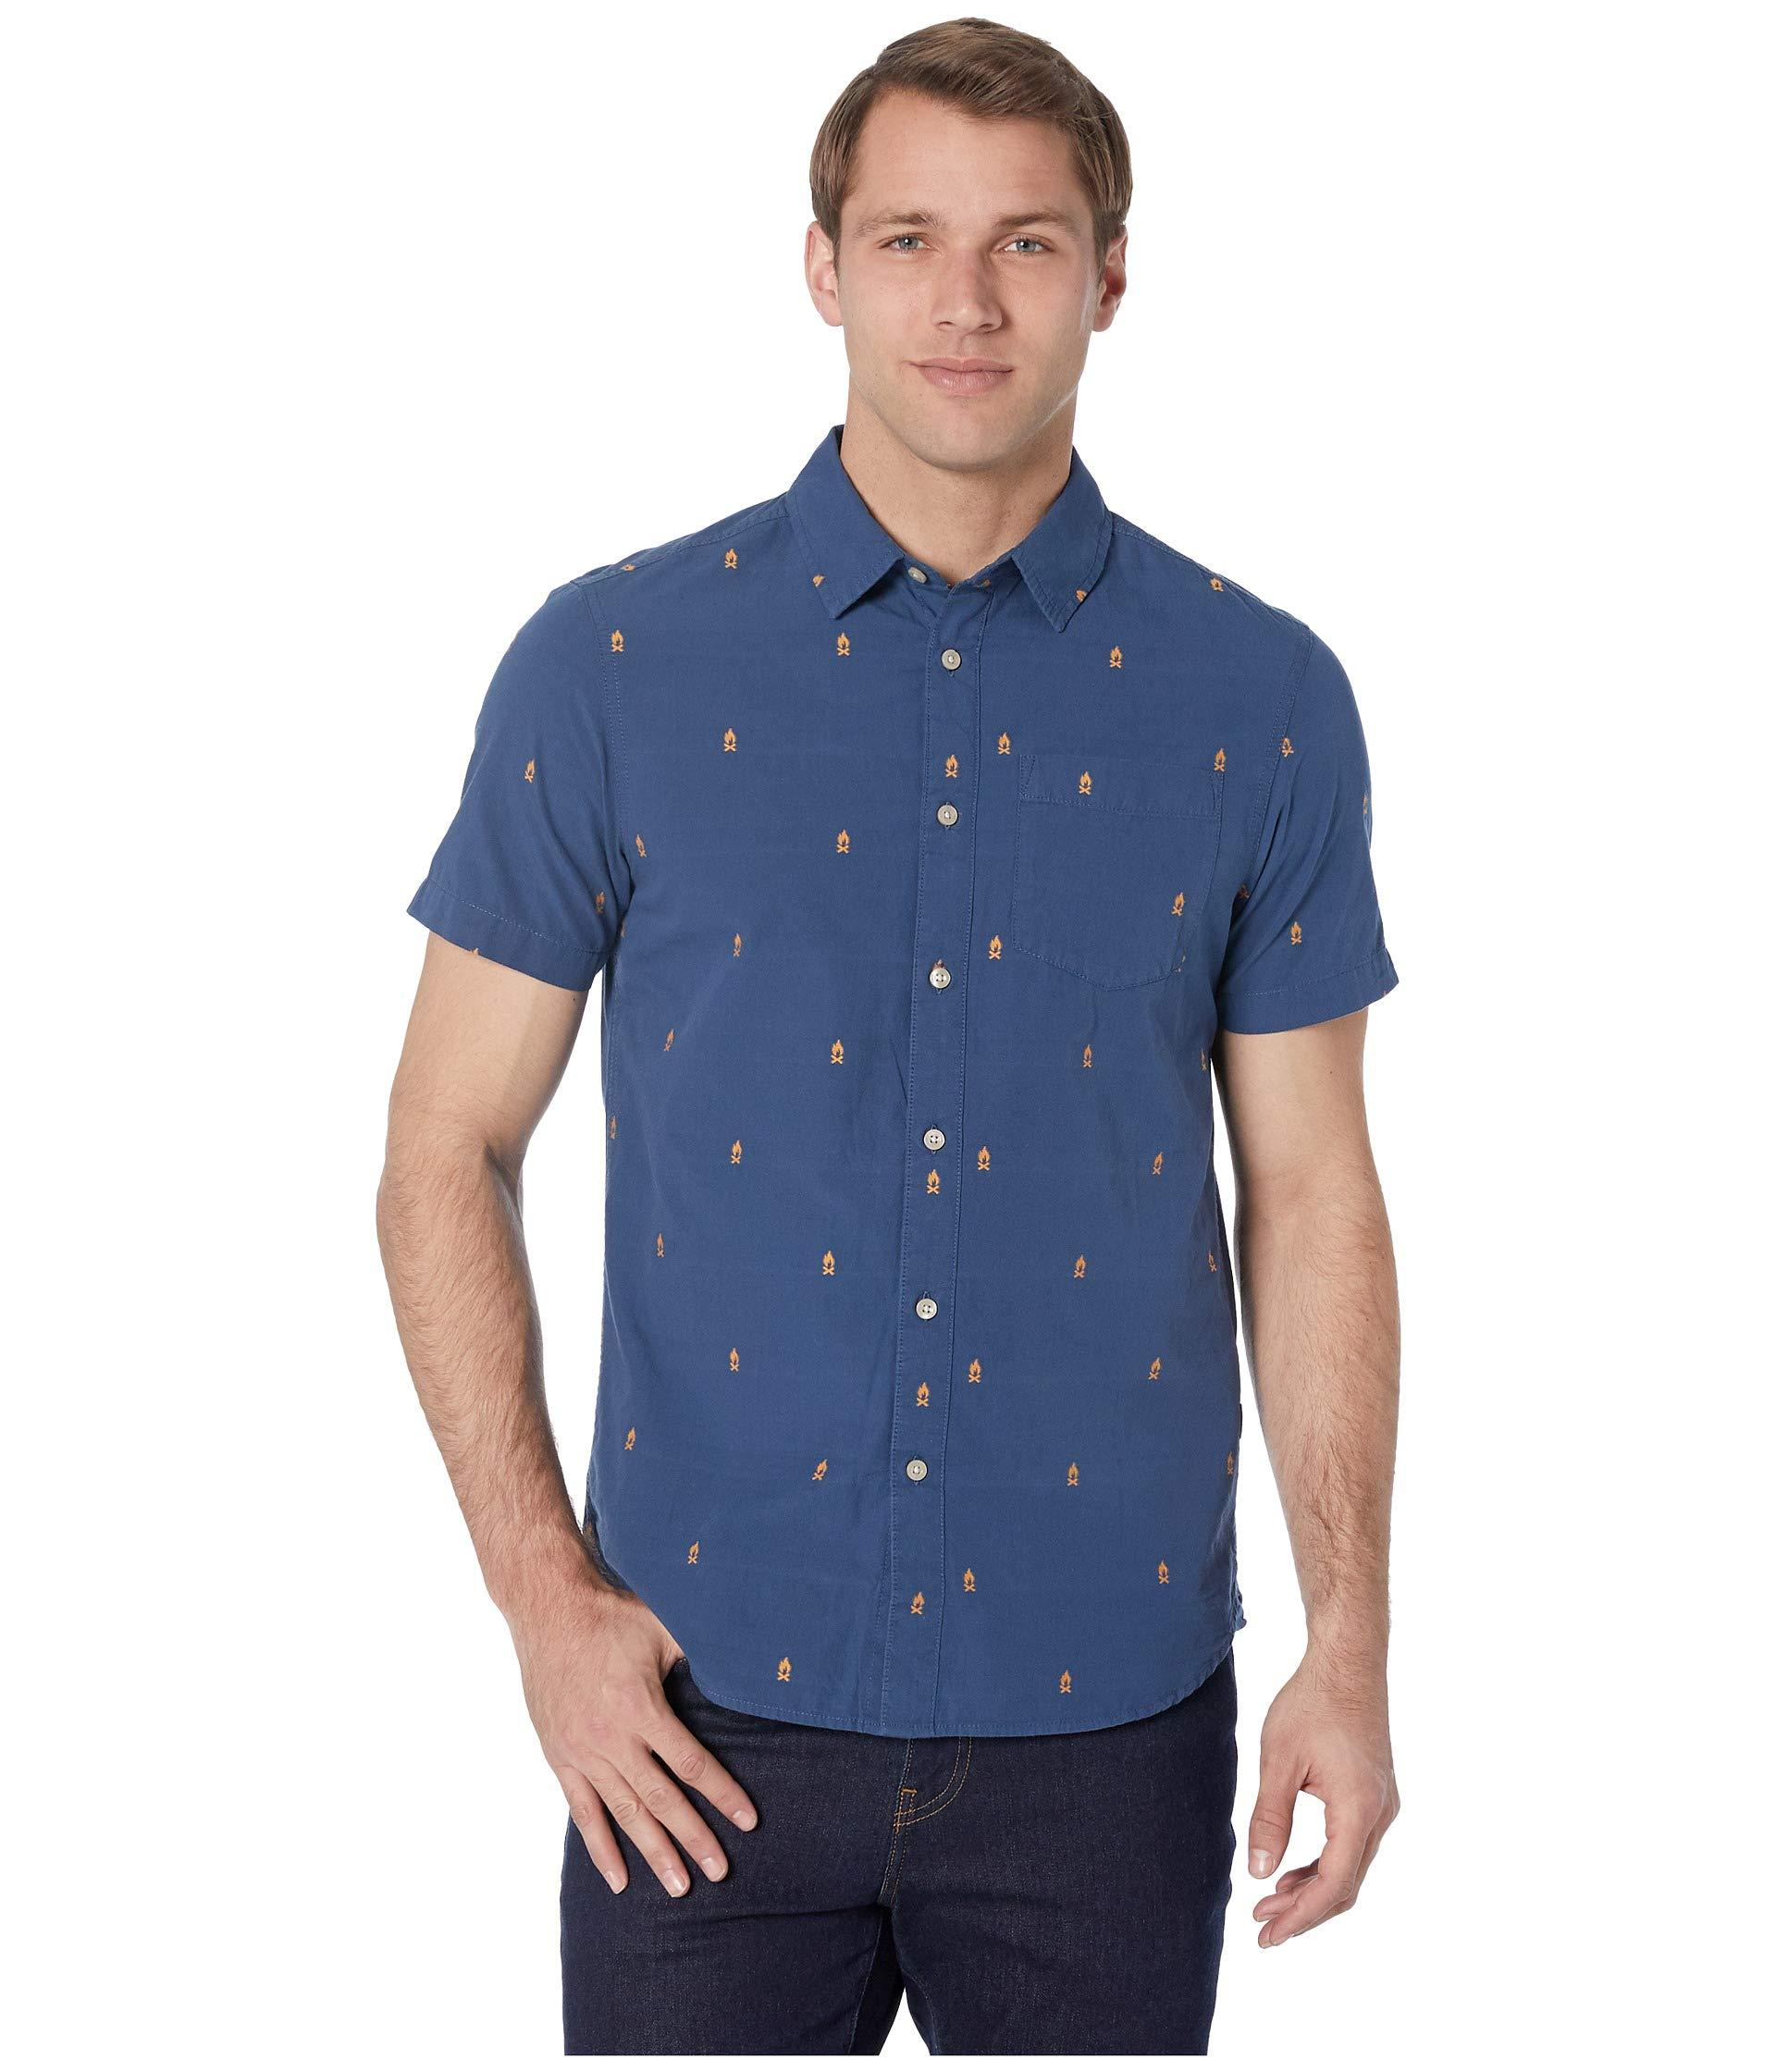 40ce62935 Lyst - The North Face Short Sleeve Baytrail Jacquard Shirt (vintage ...